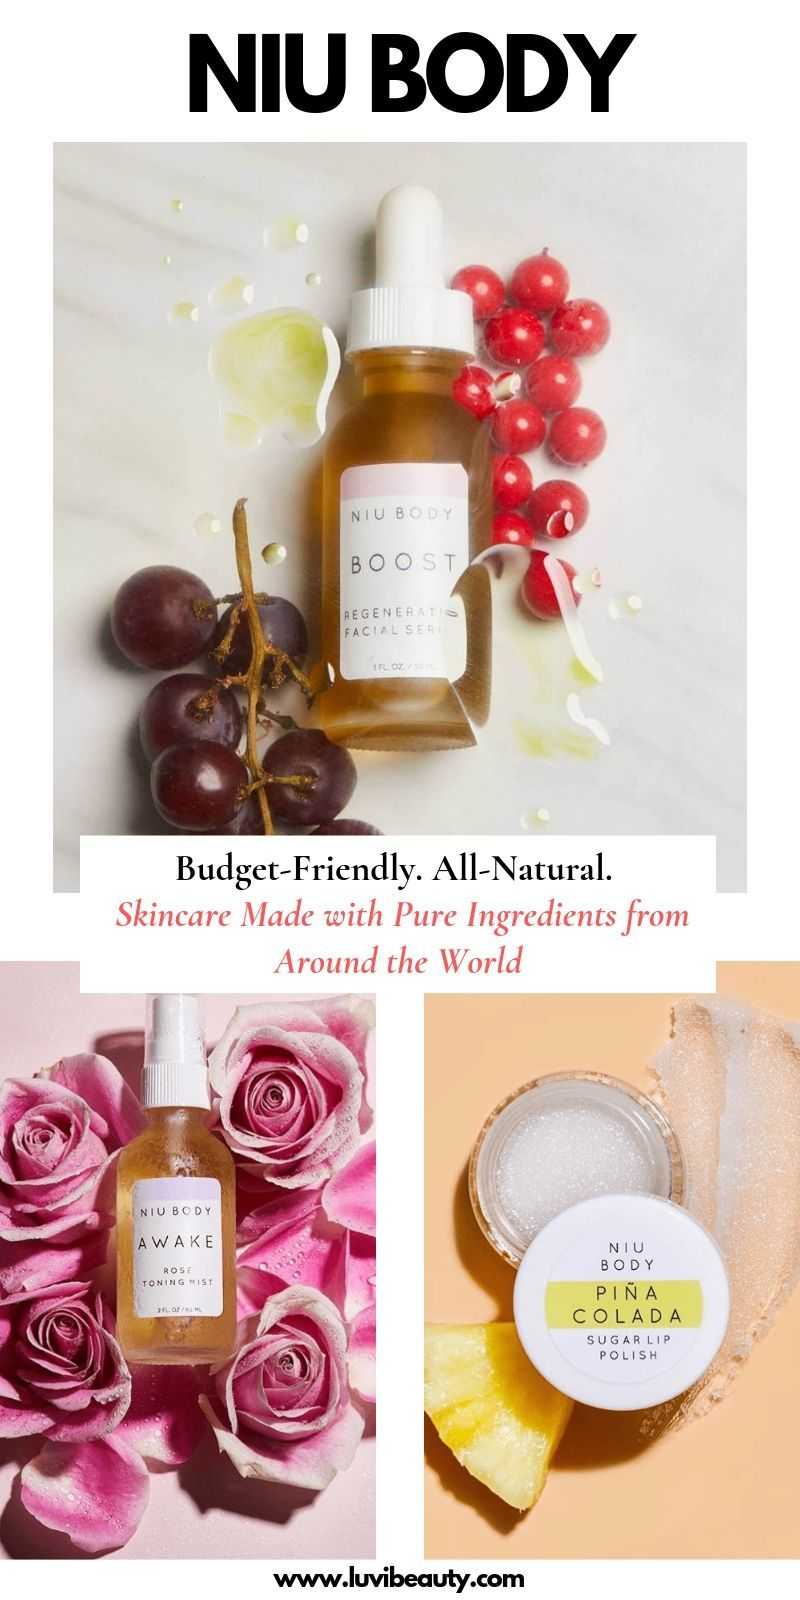 NIU BODY SKINCARE. Natural skincare that fits any budget